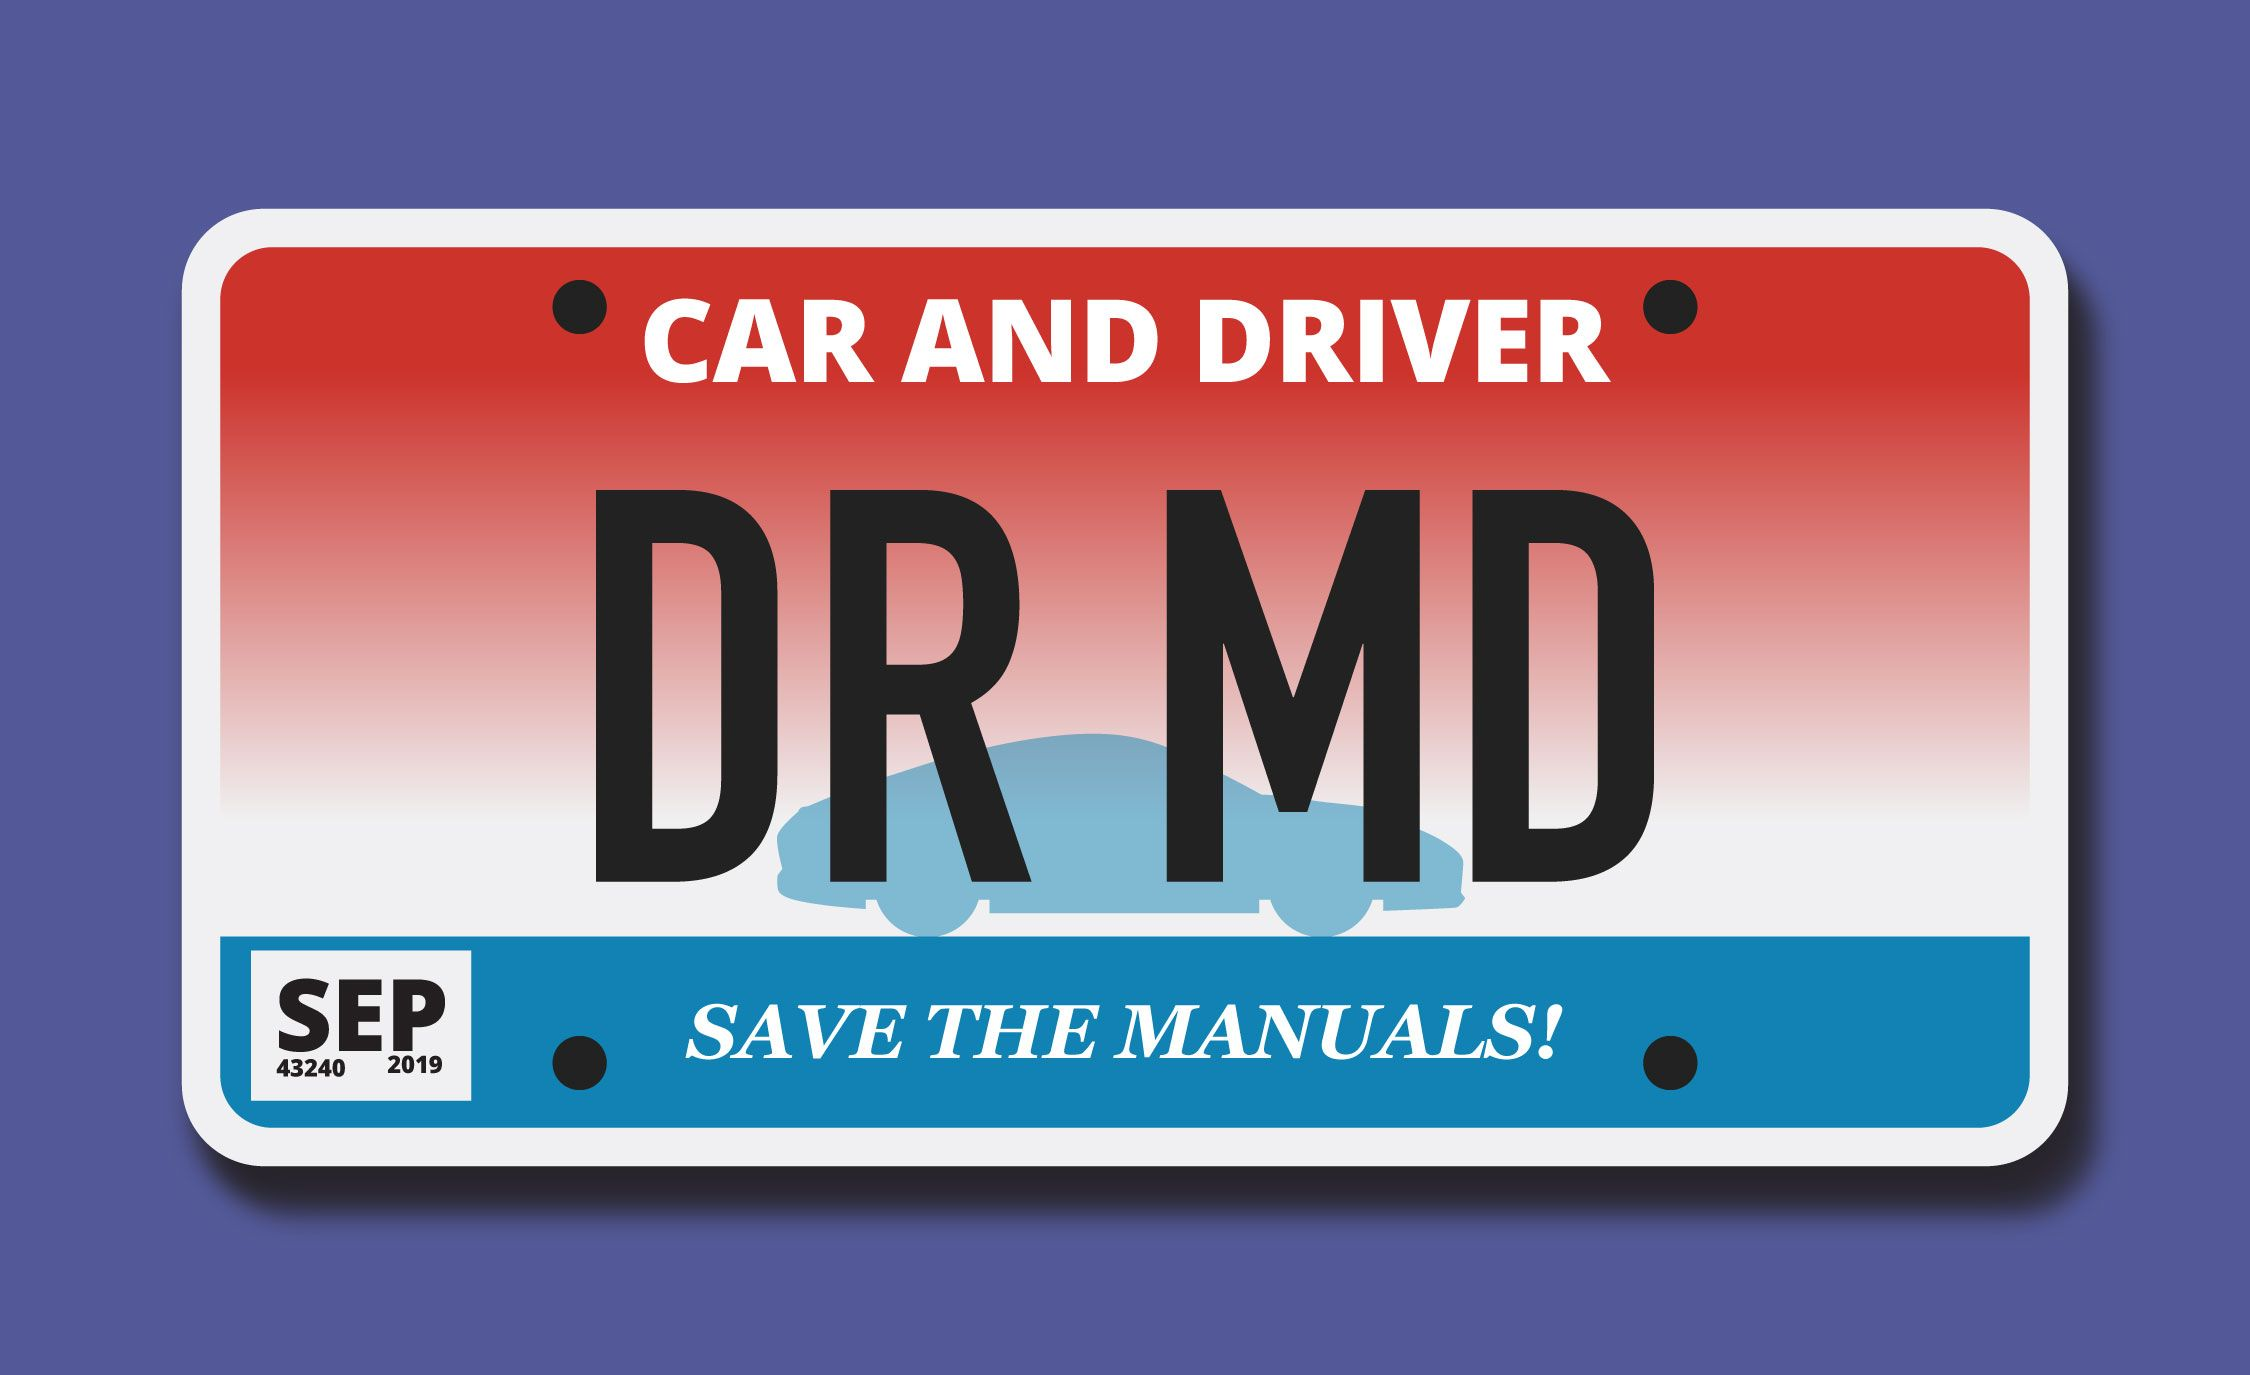 15 Funny Vanity Plate Ideas Best Custom License Plates For Laughs